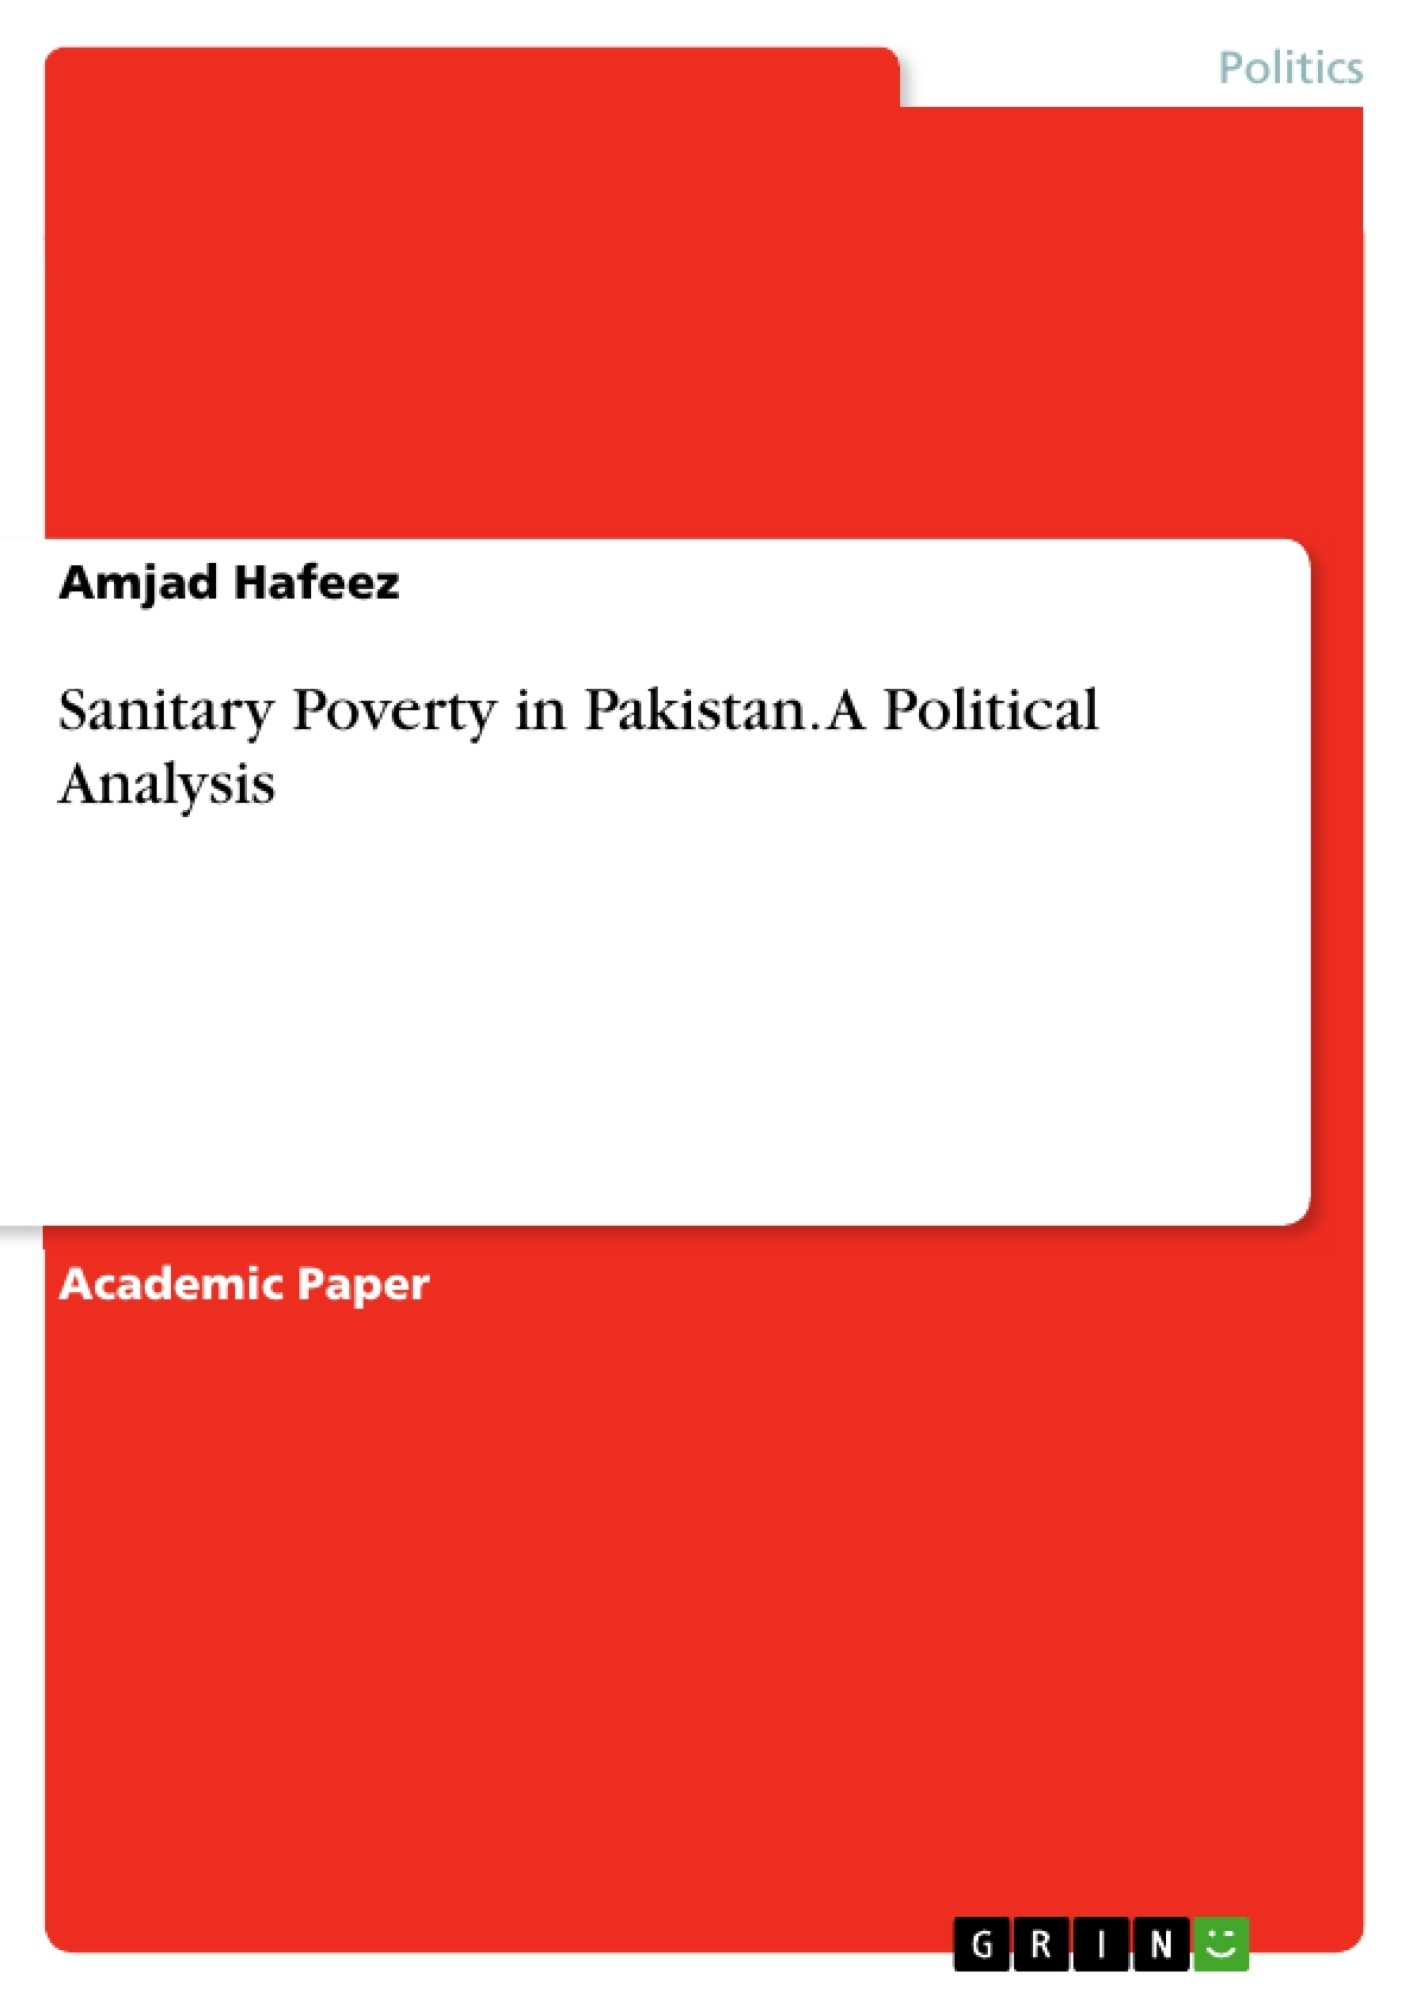 Title: Sanitary Poverty in Pakistan. A Political Analysis